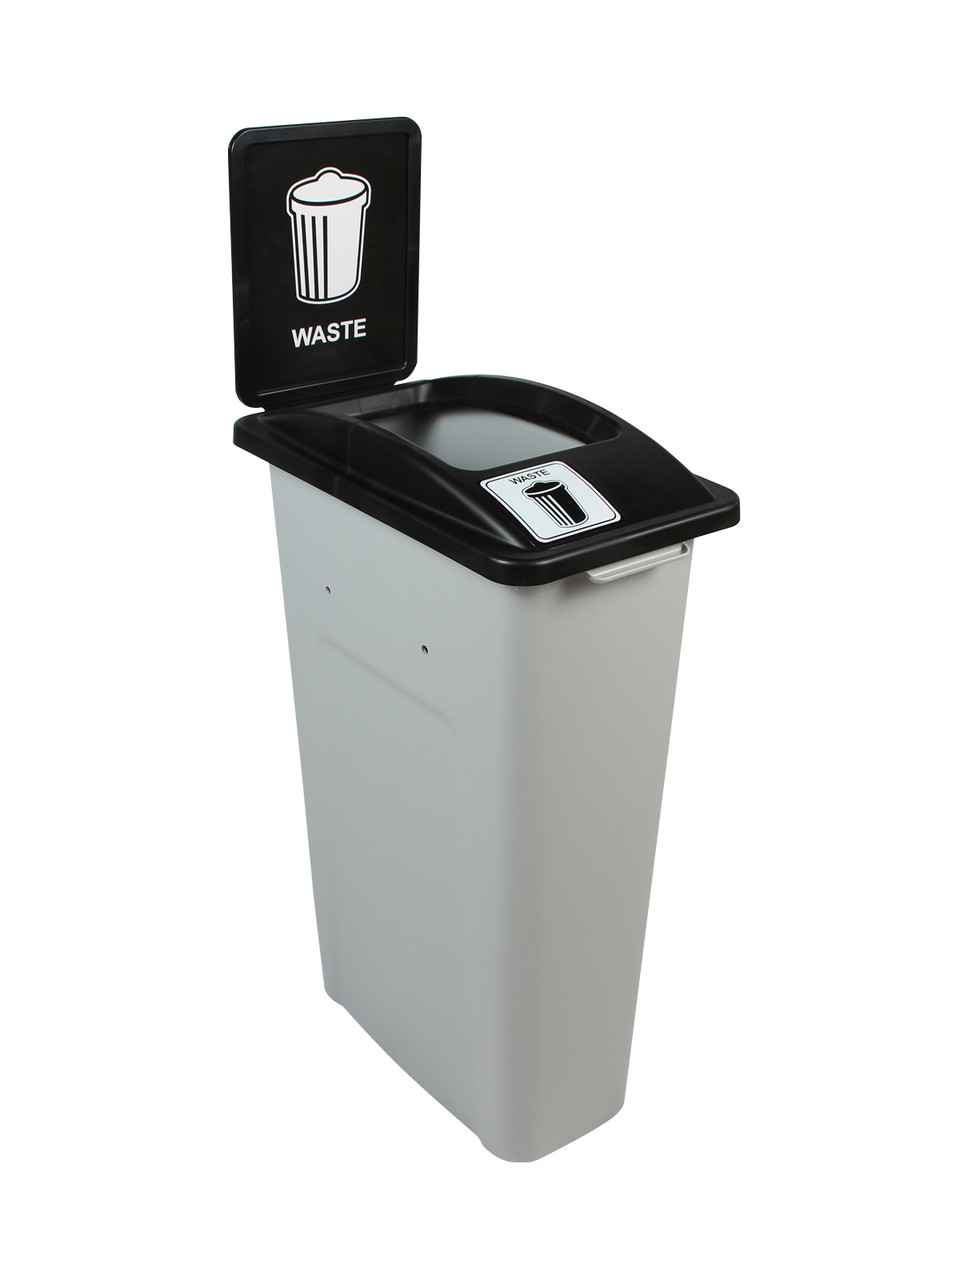 23 Gallon Skinny Simple Sort Waste Can with Sign (Waste, Open Top)